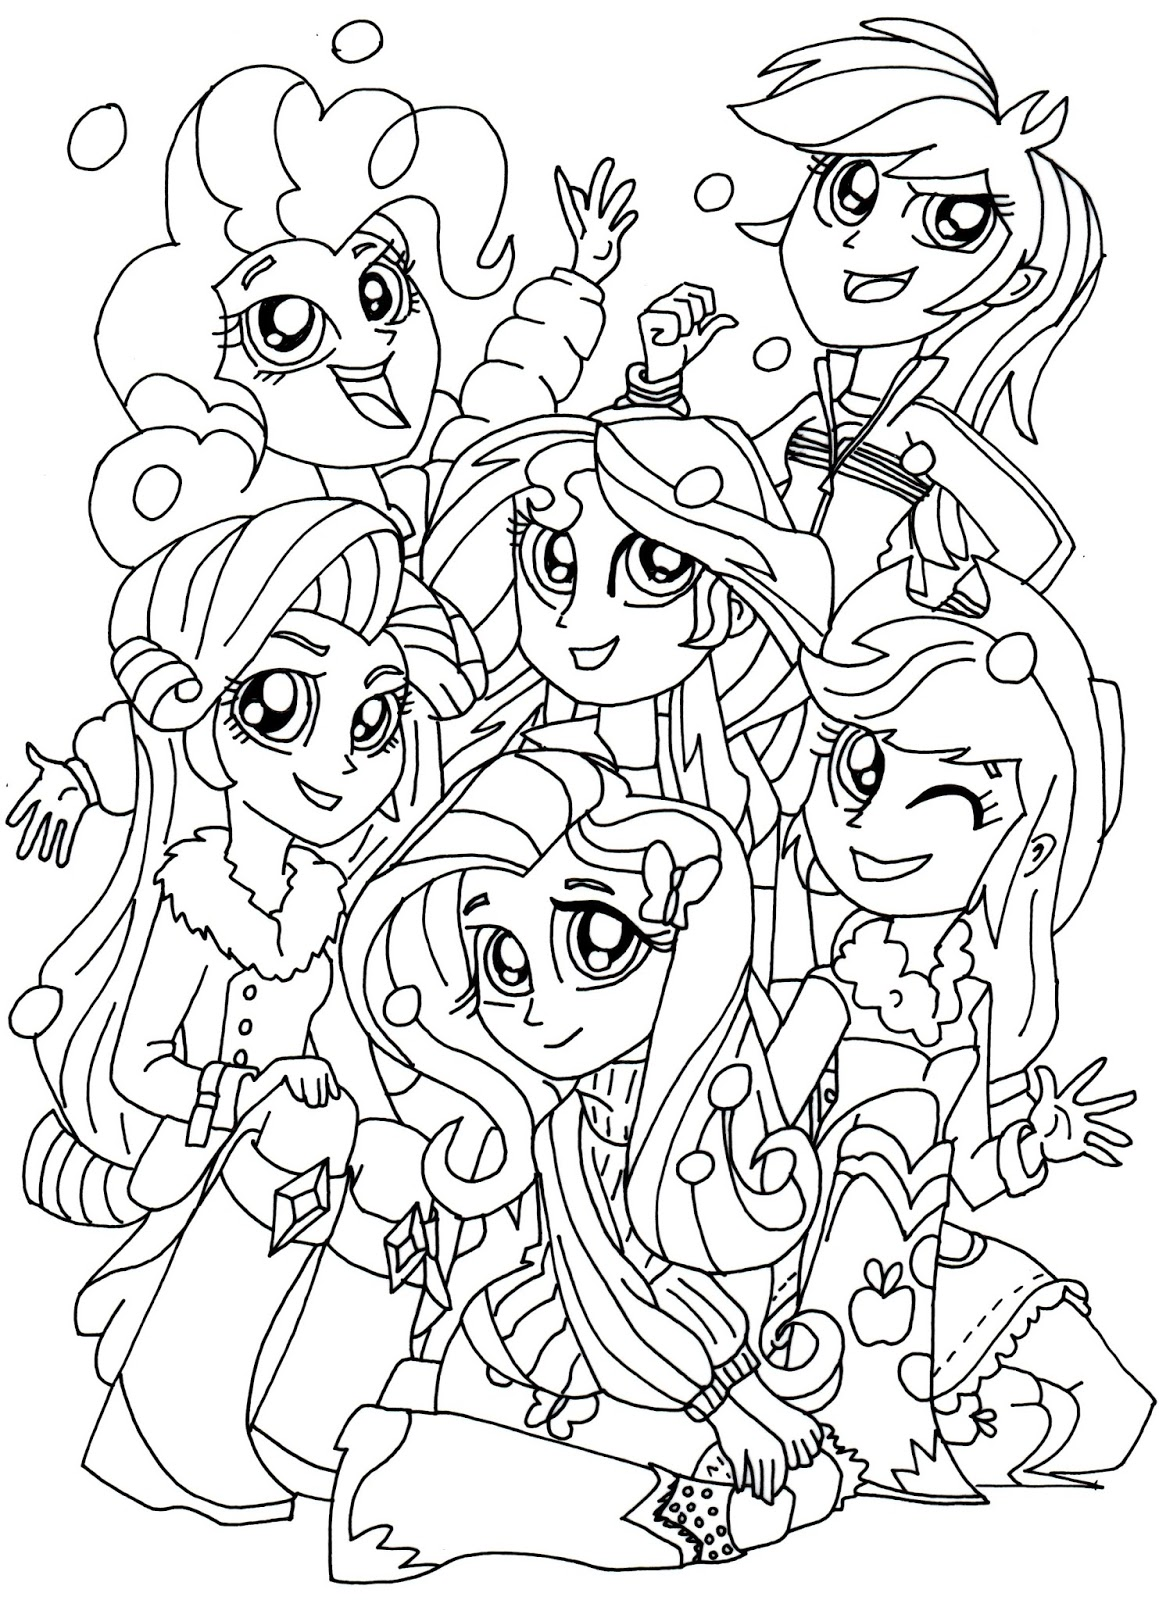 My Little Pony Equestria Girls Sunset Shimmer Coloring Page My Pony Equestria Friendship Coloring Pages